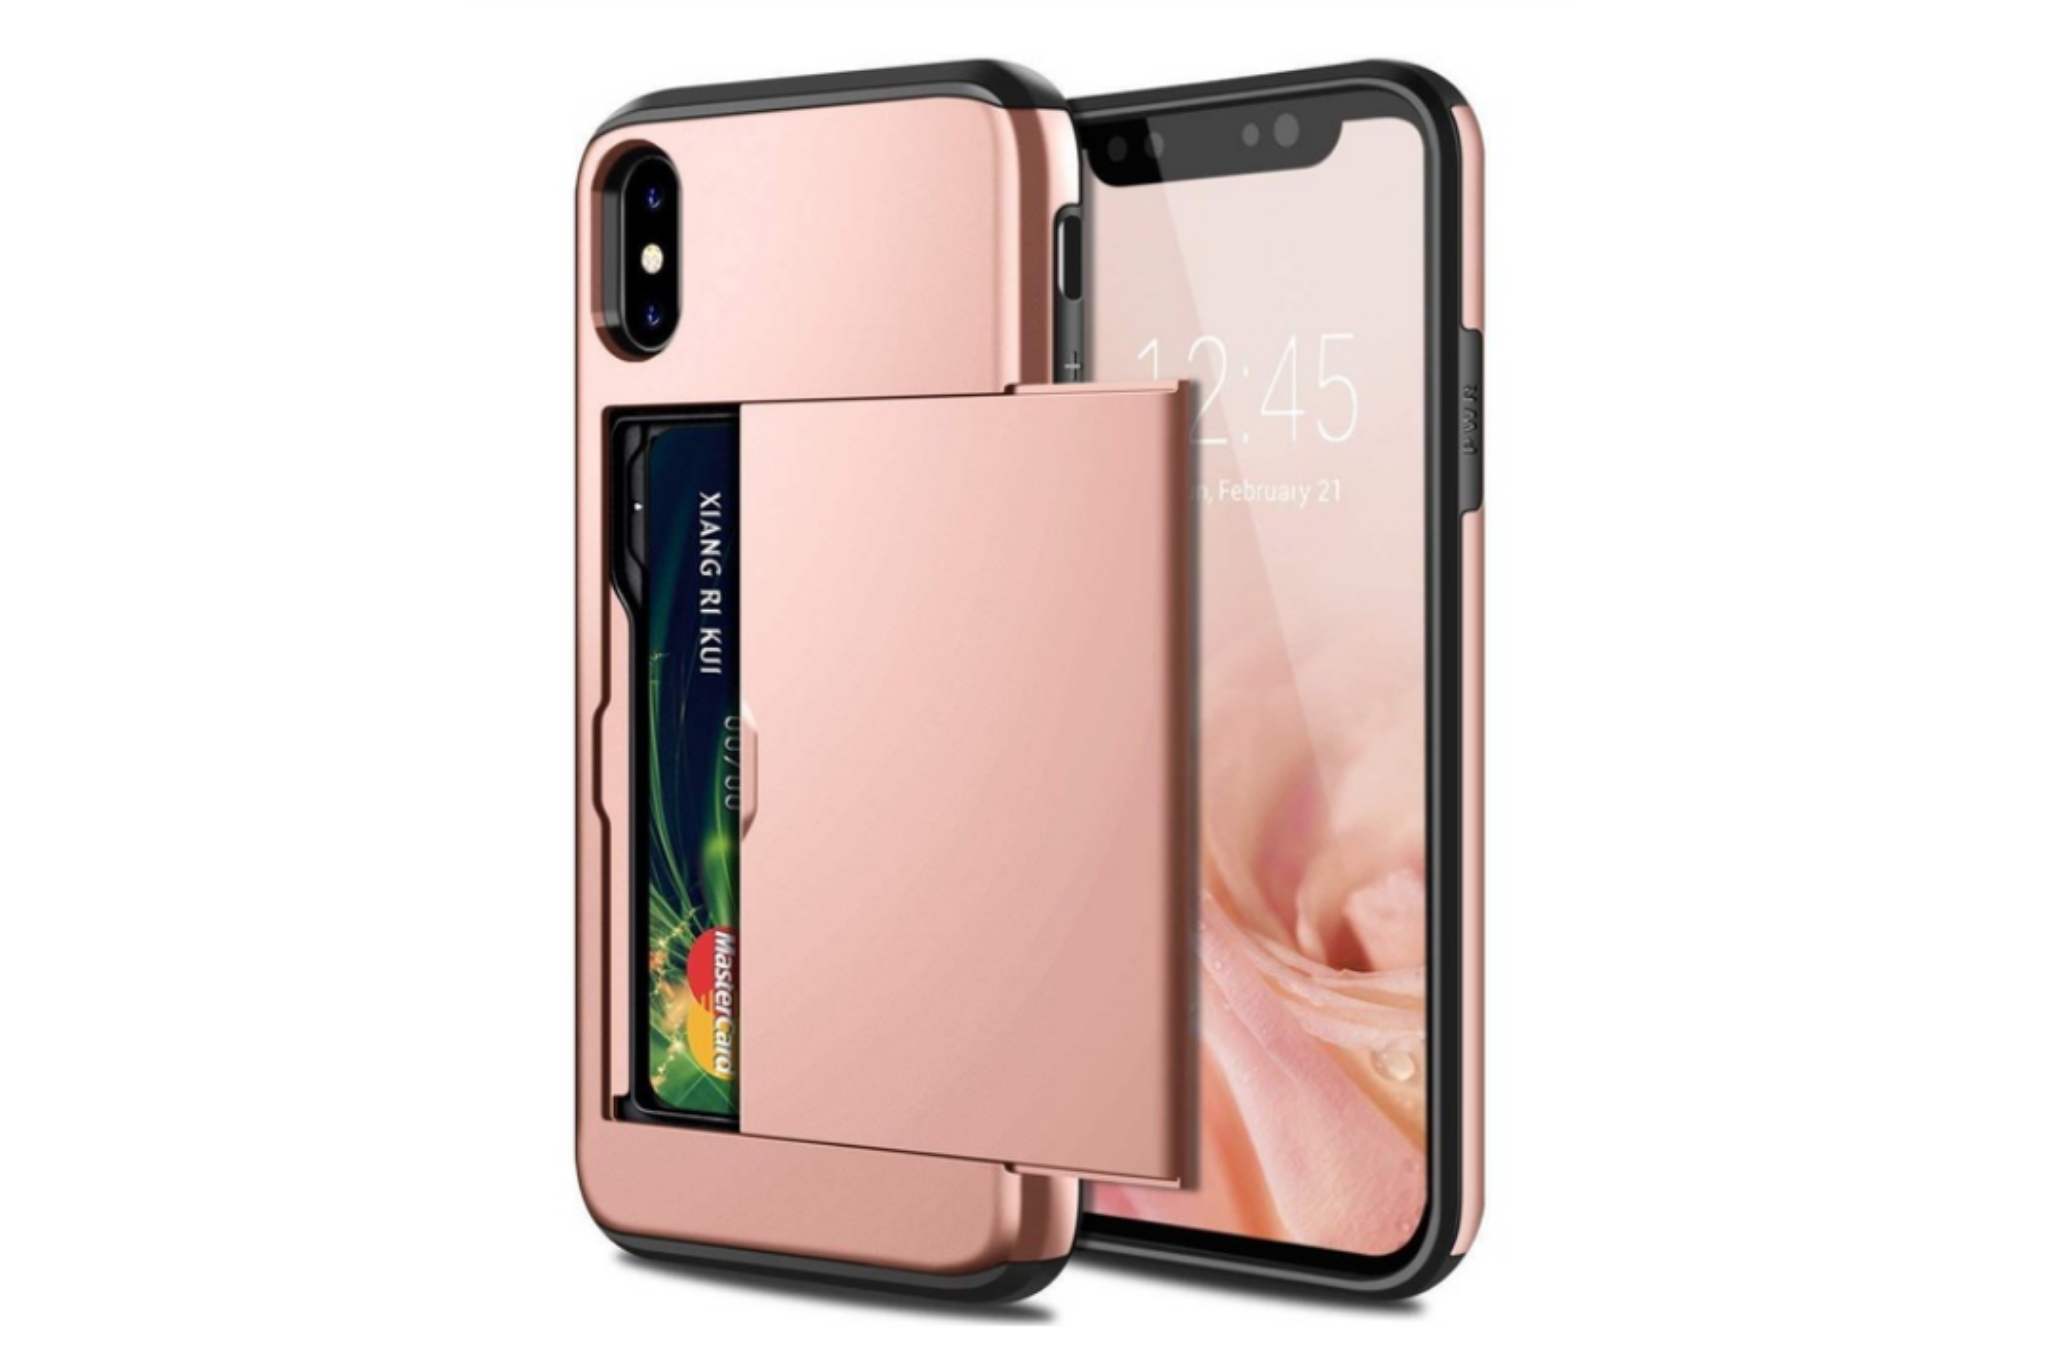 Smartphonehoesje iPhone 11 Pro Max | Pasjesschuif | Rose gold